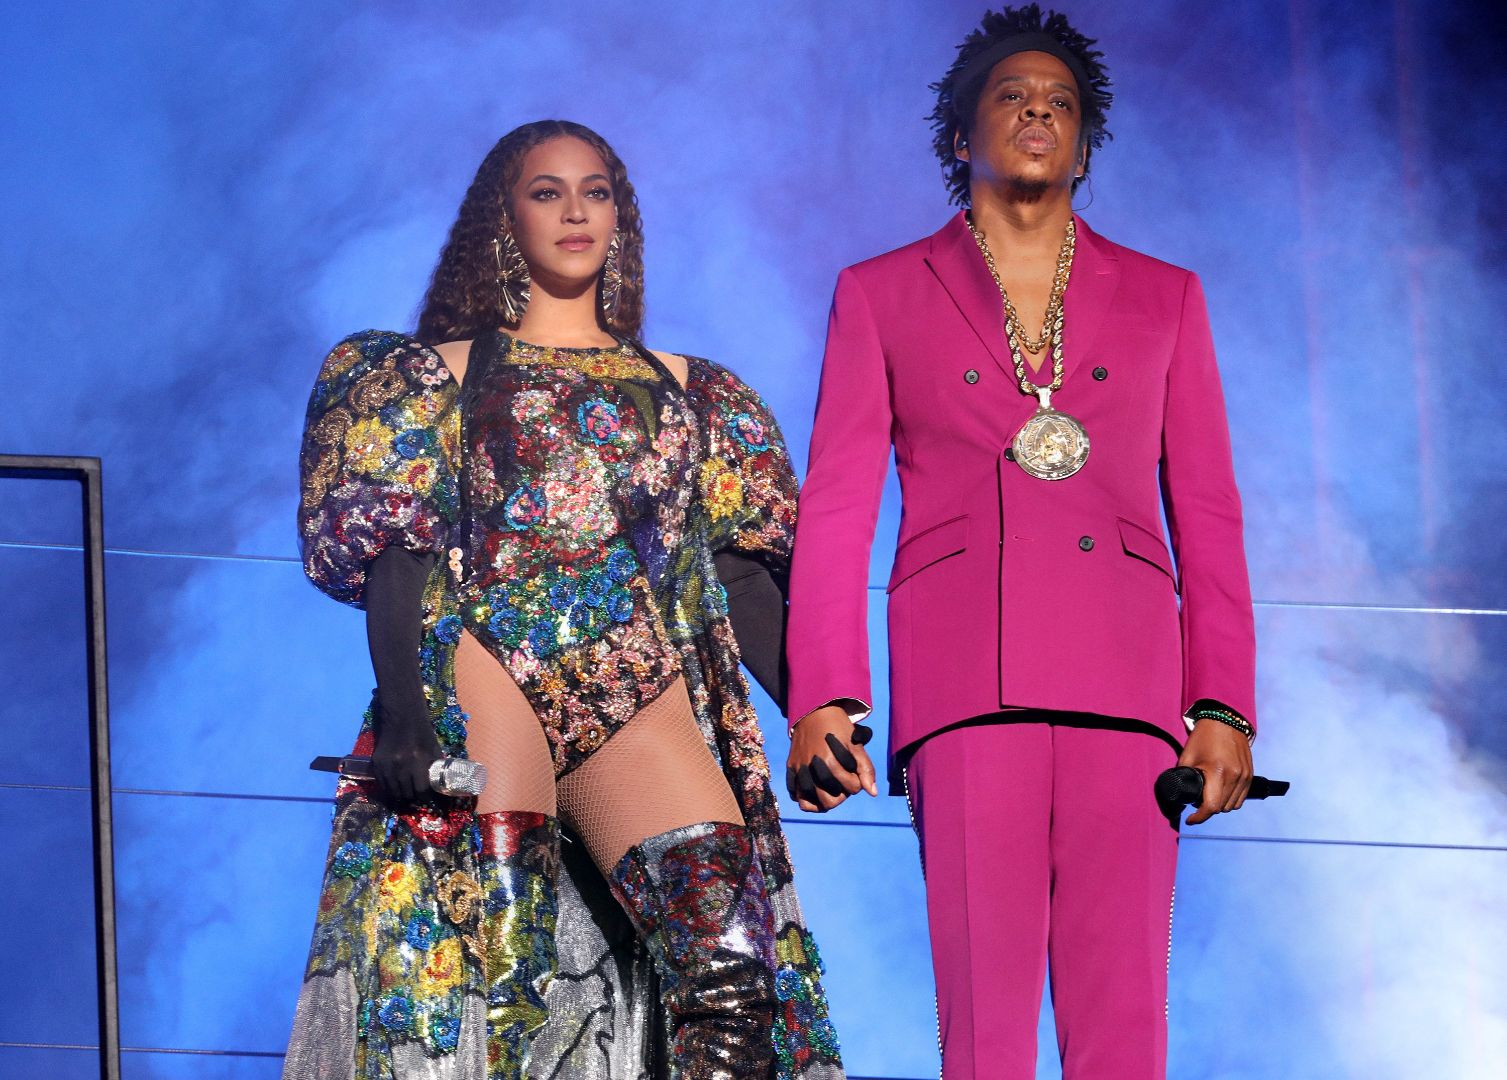 Jay And Bey Shut Down The Global Citizen Stage